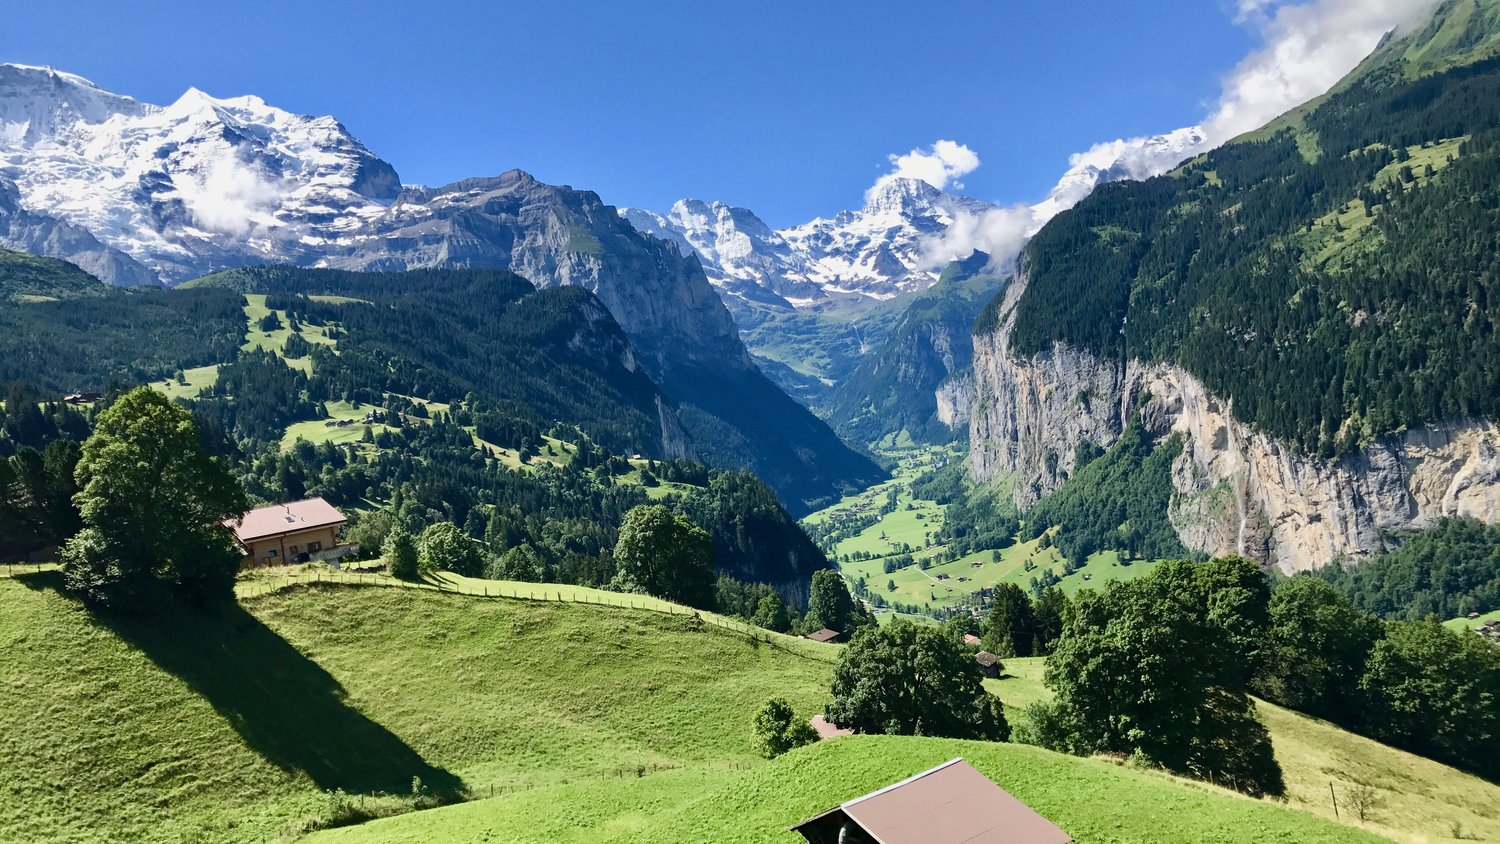 Lauterbrunnen - Switzerland